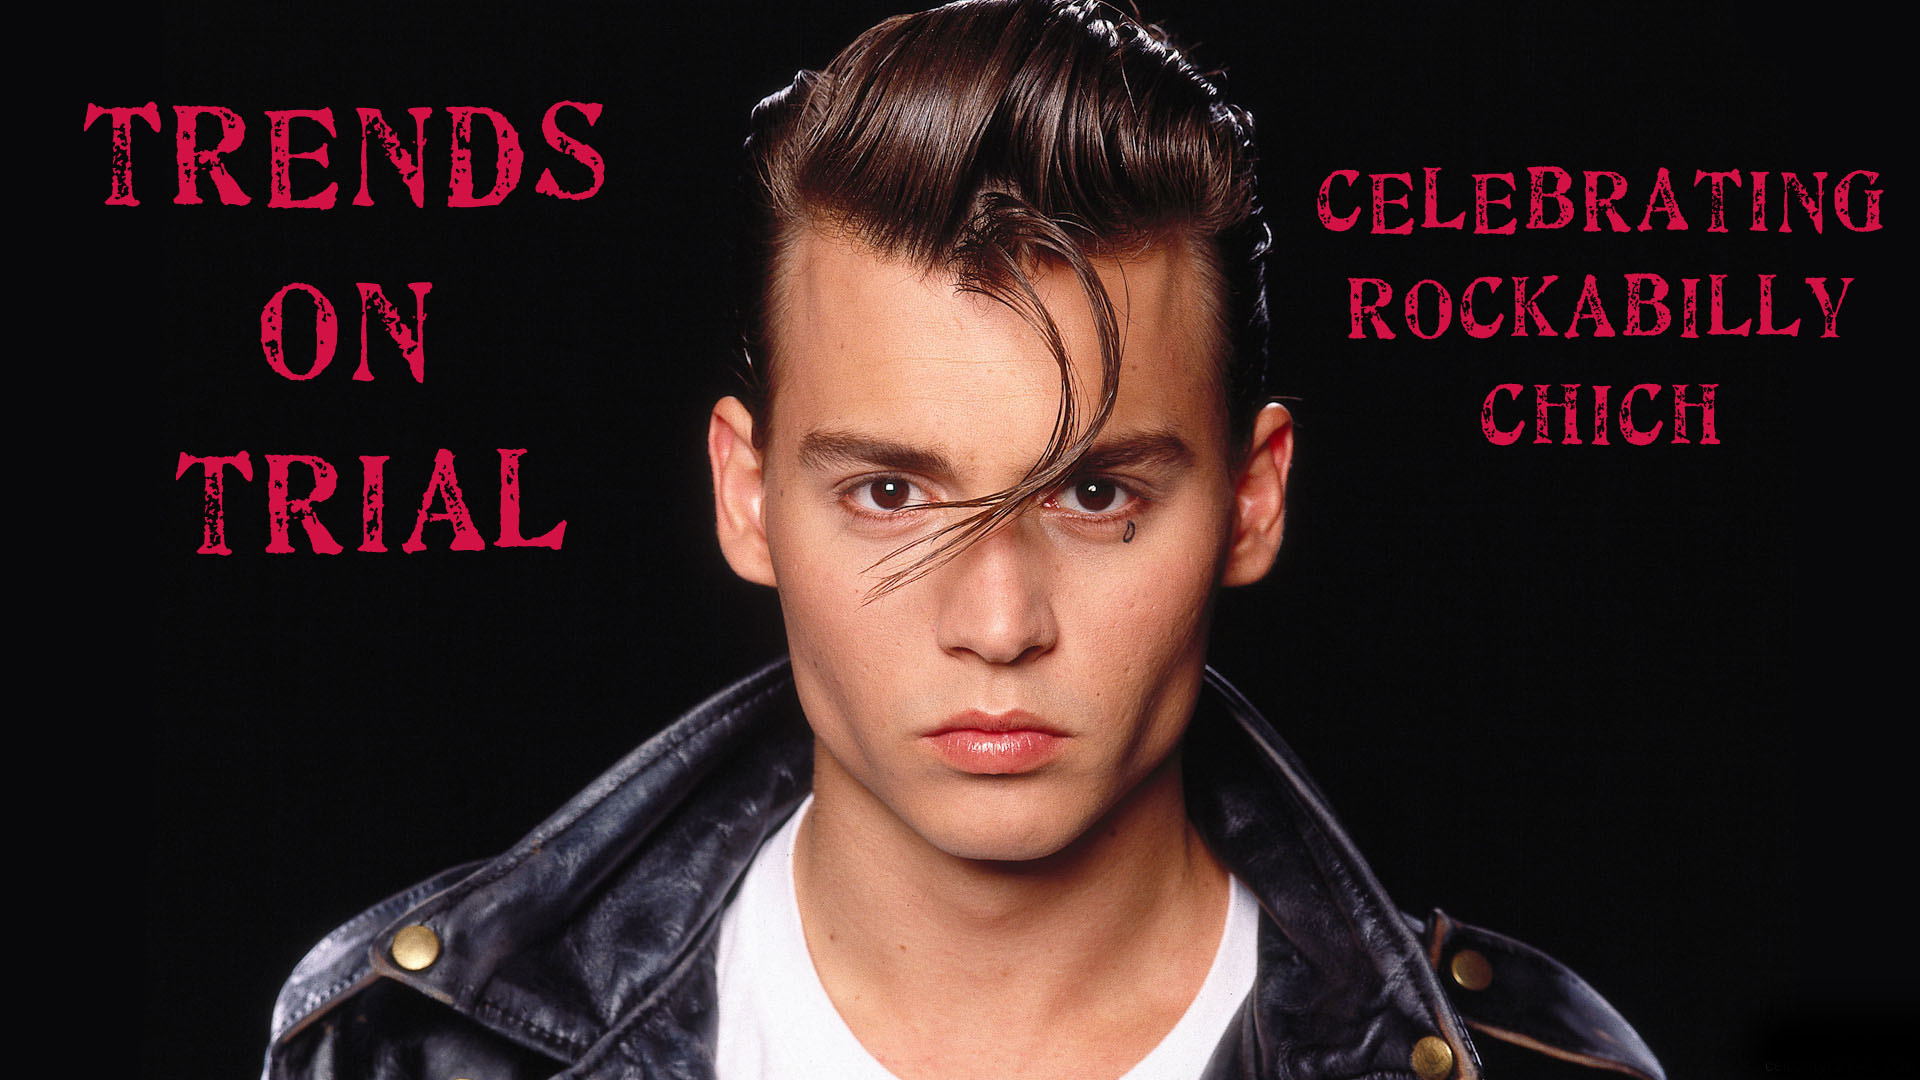 Trends on Trial: 'I Ain't No Square' — Celebrating Rockabilly